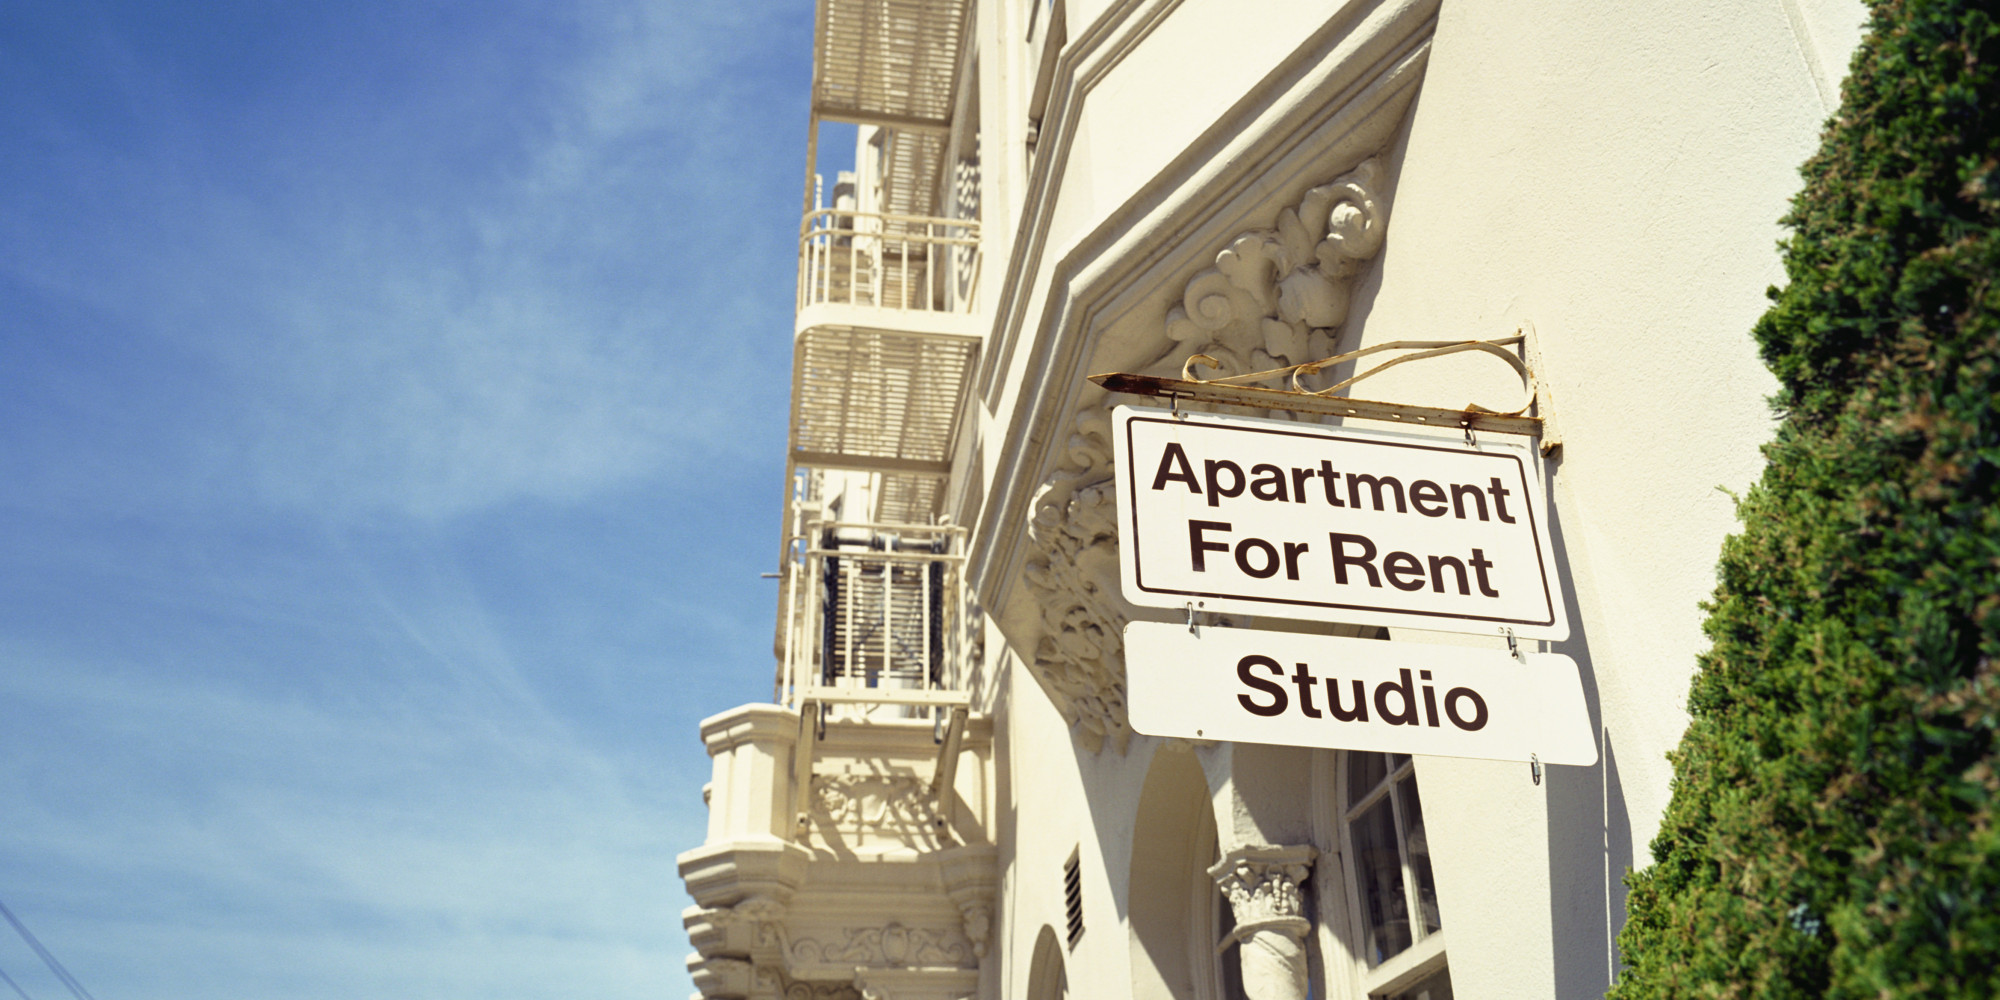 Das Beste How To Afford A Roommate Free Apartment Really Huffpost In Diesem Monat